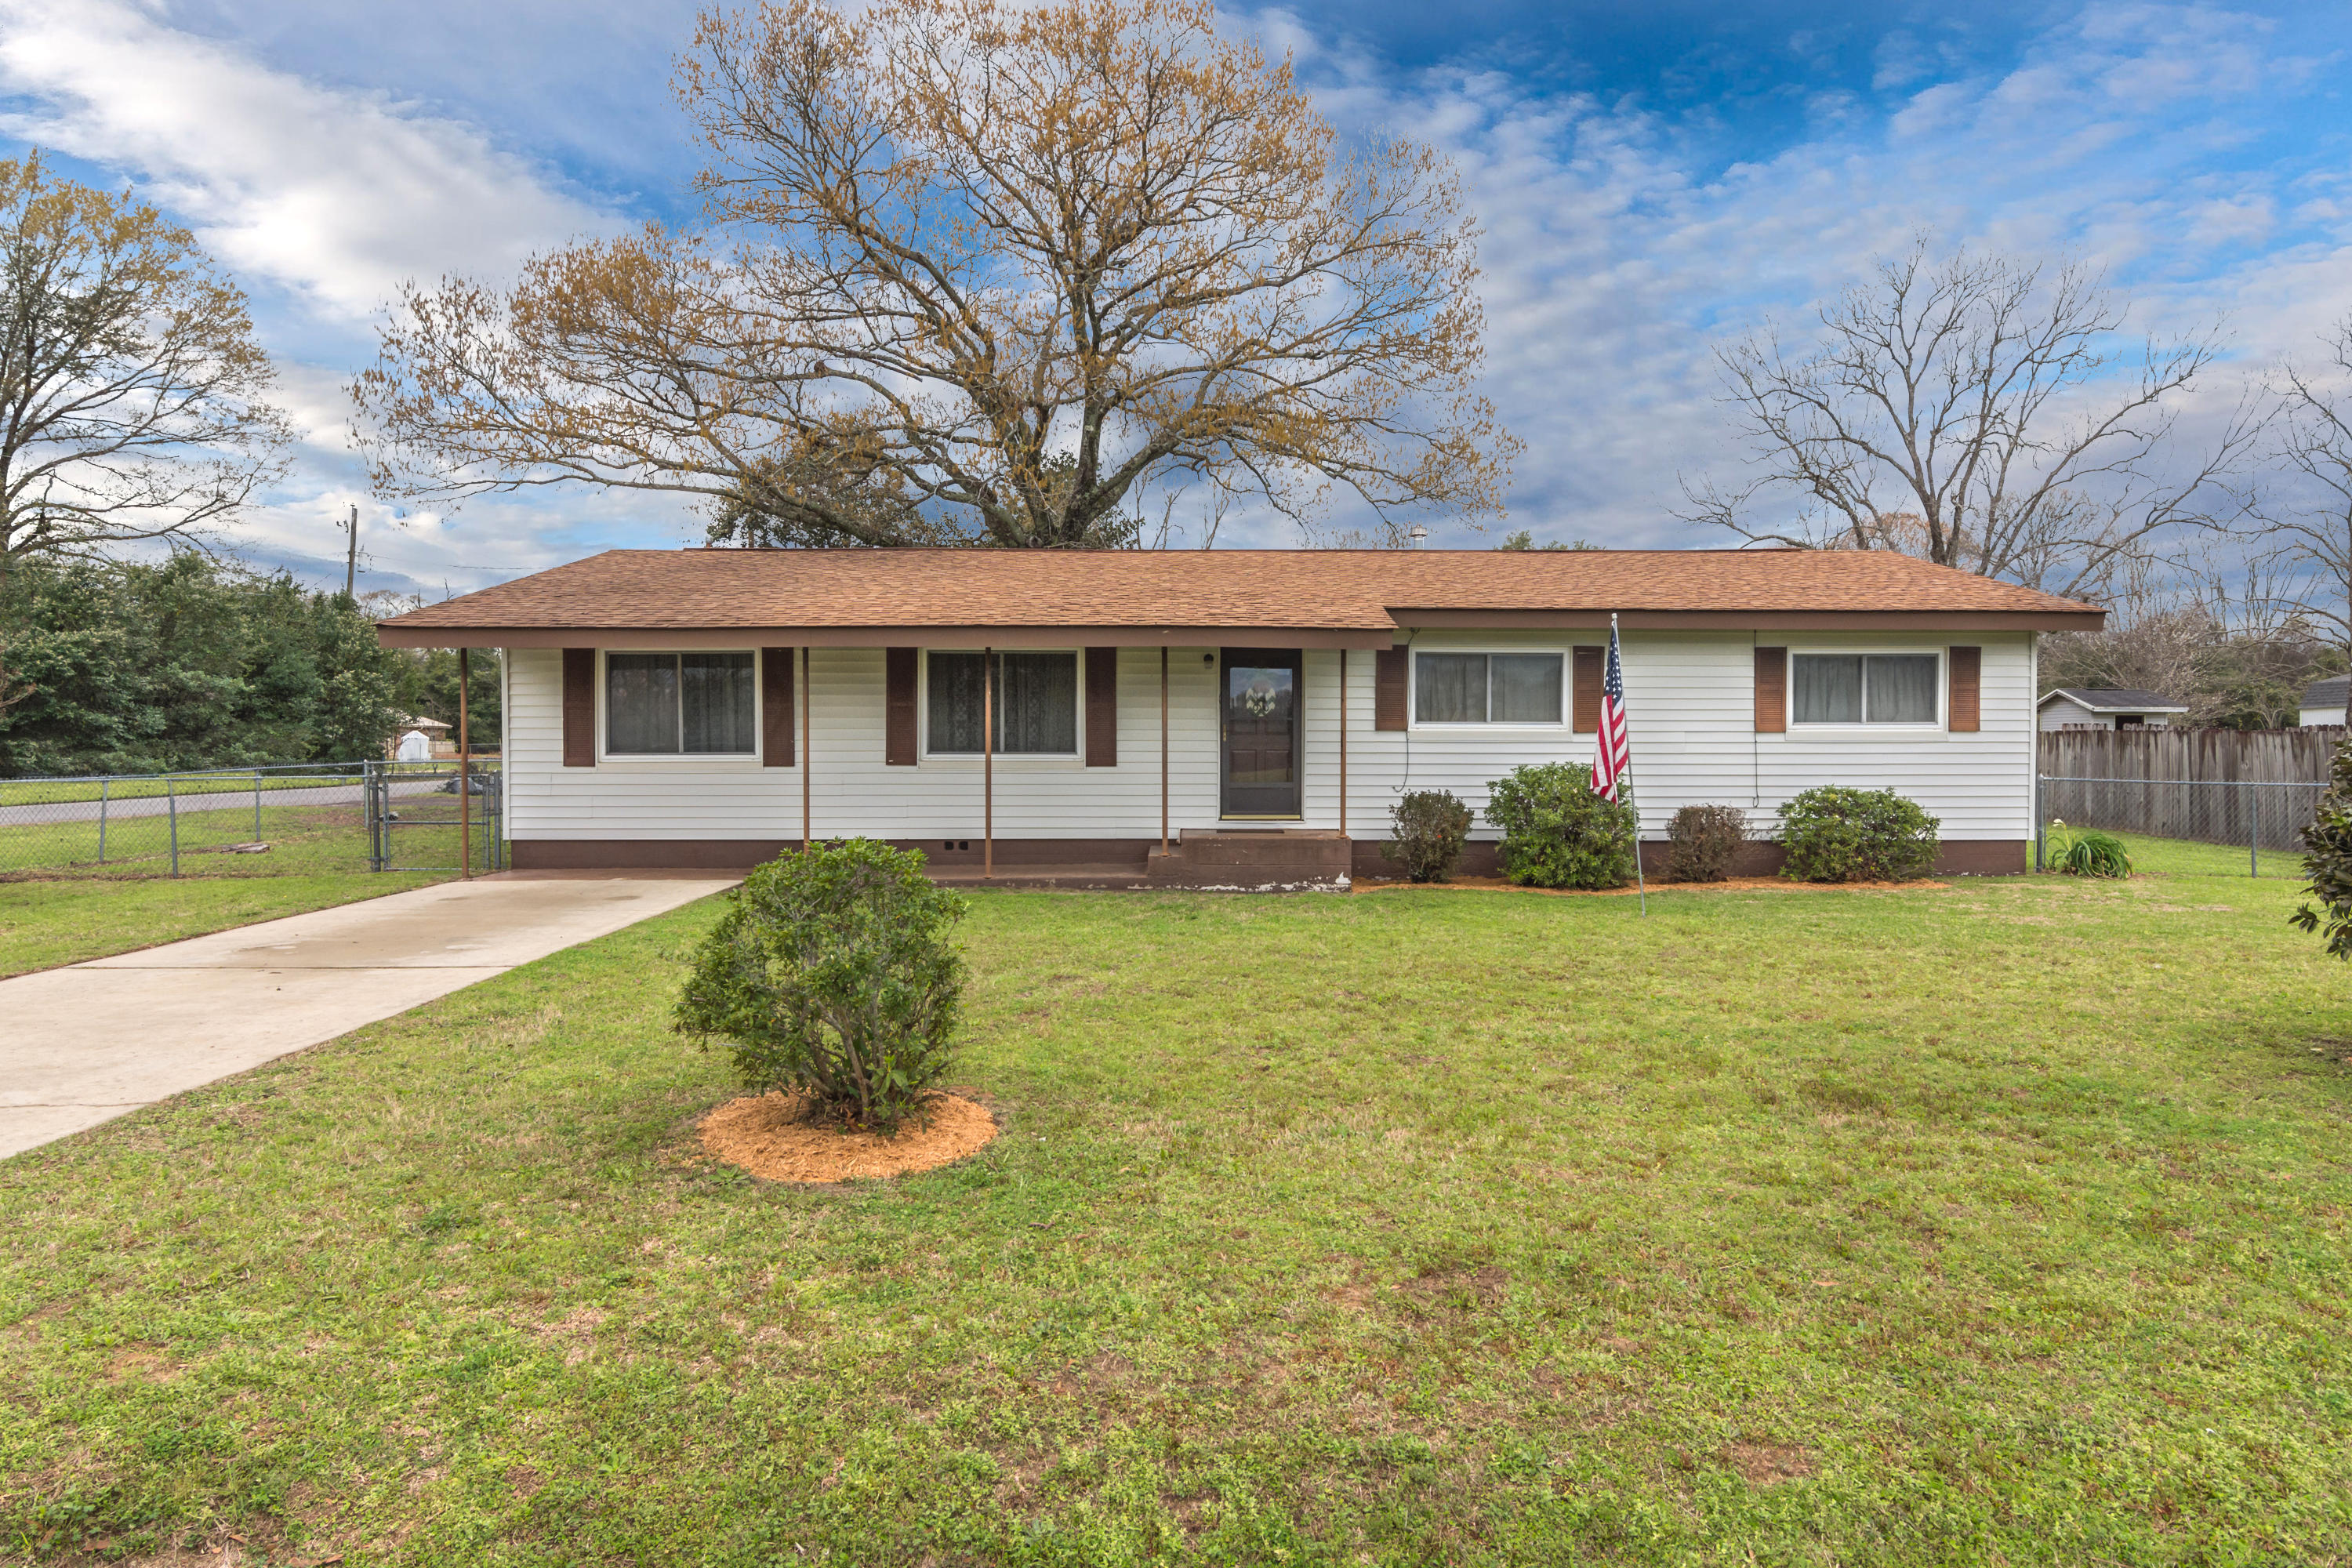 Photo of home for sale at 1202 Farmer, Crestview FL